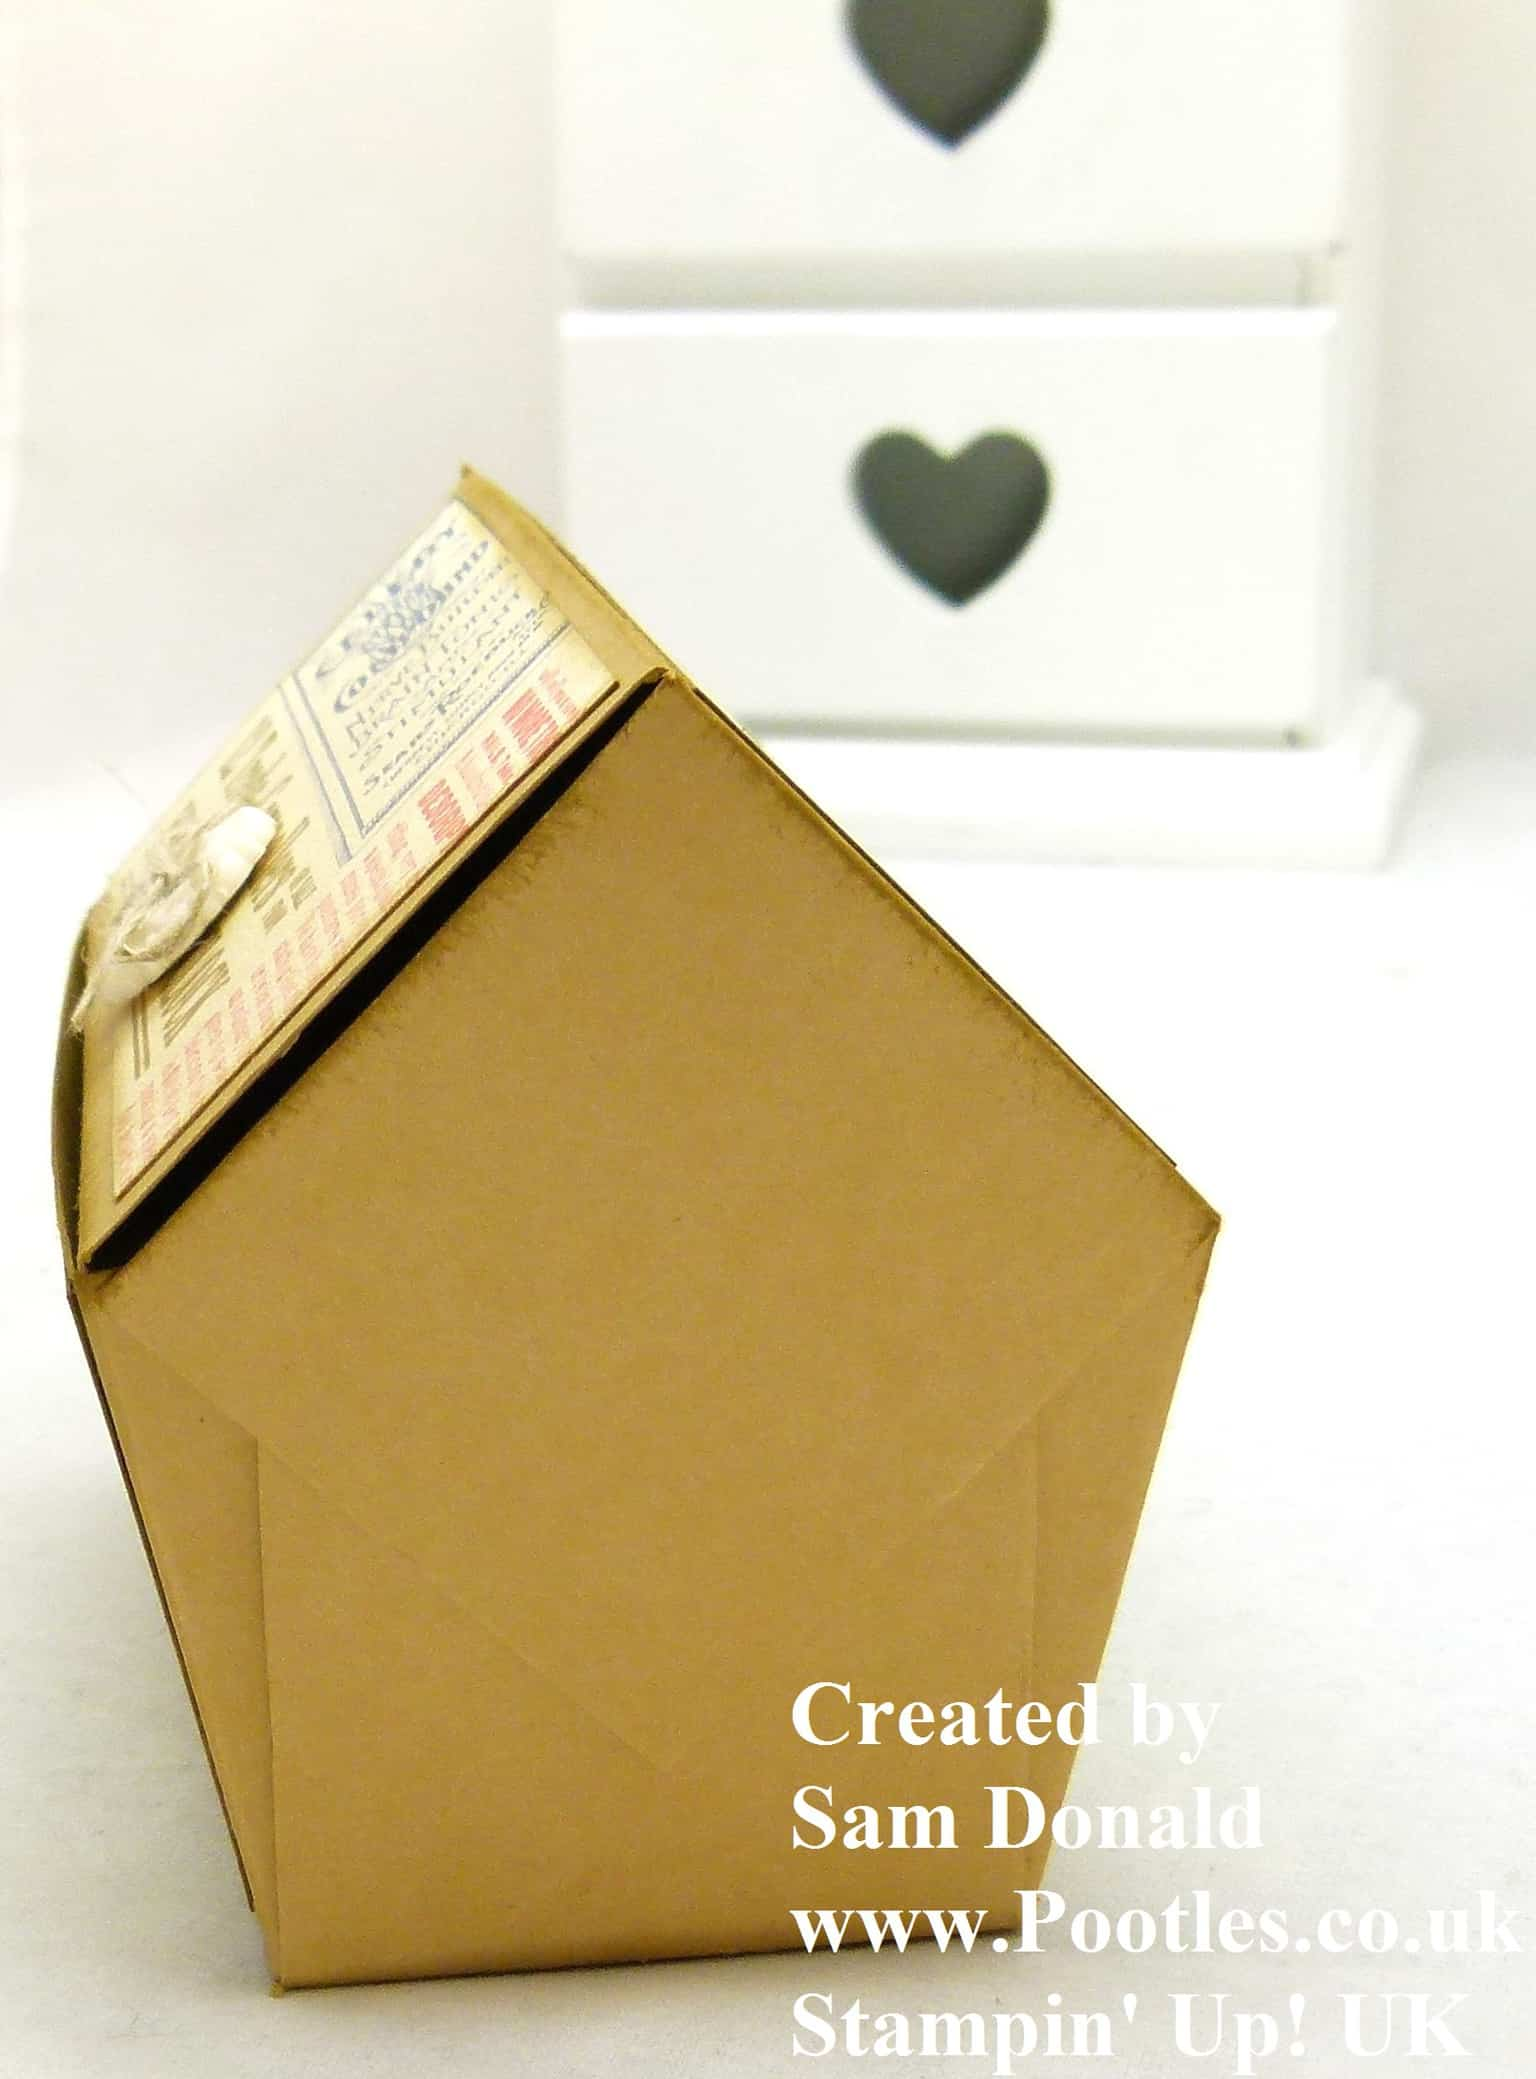 Pootles Stampin Up UK Pentagonal Treasure Chest Keepsake Box Tutorial